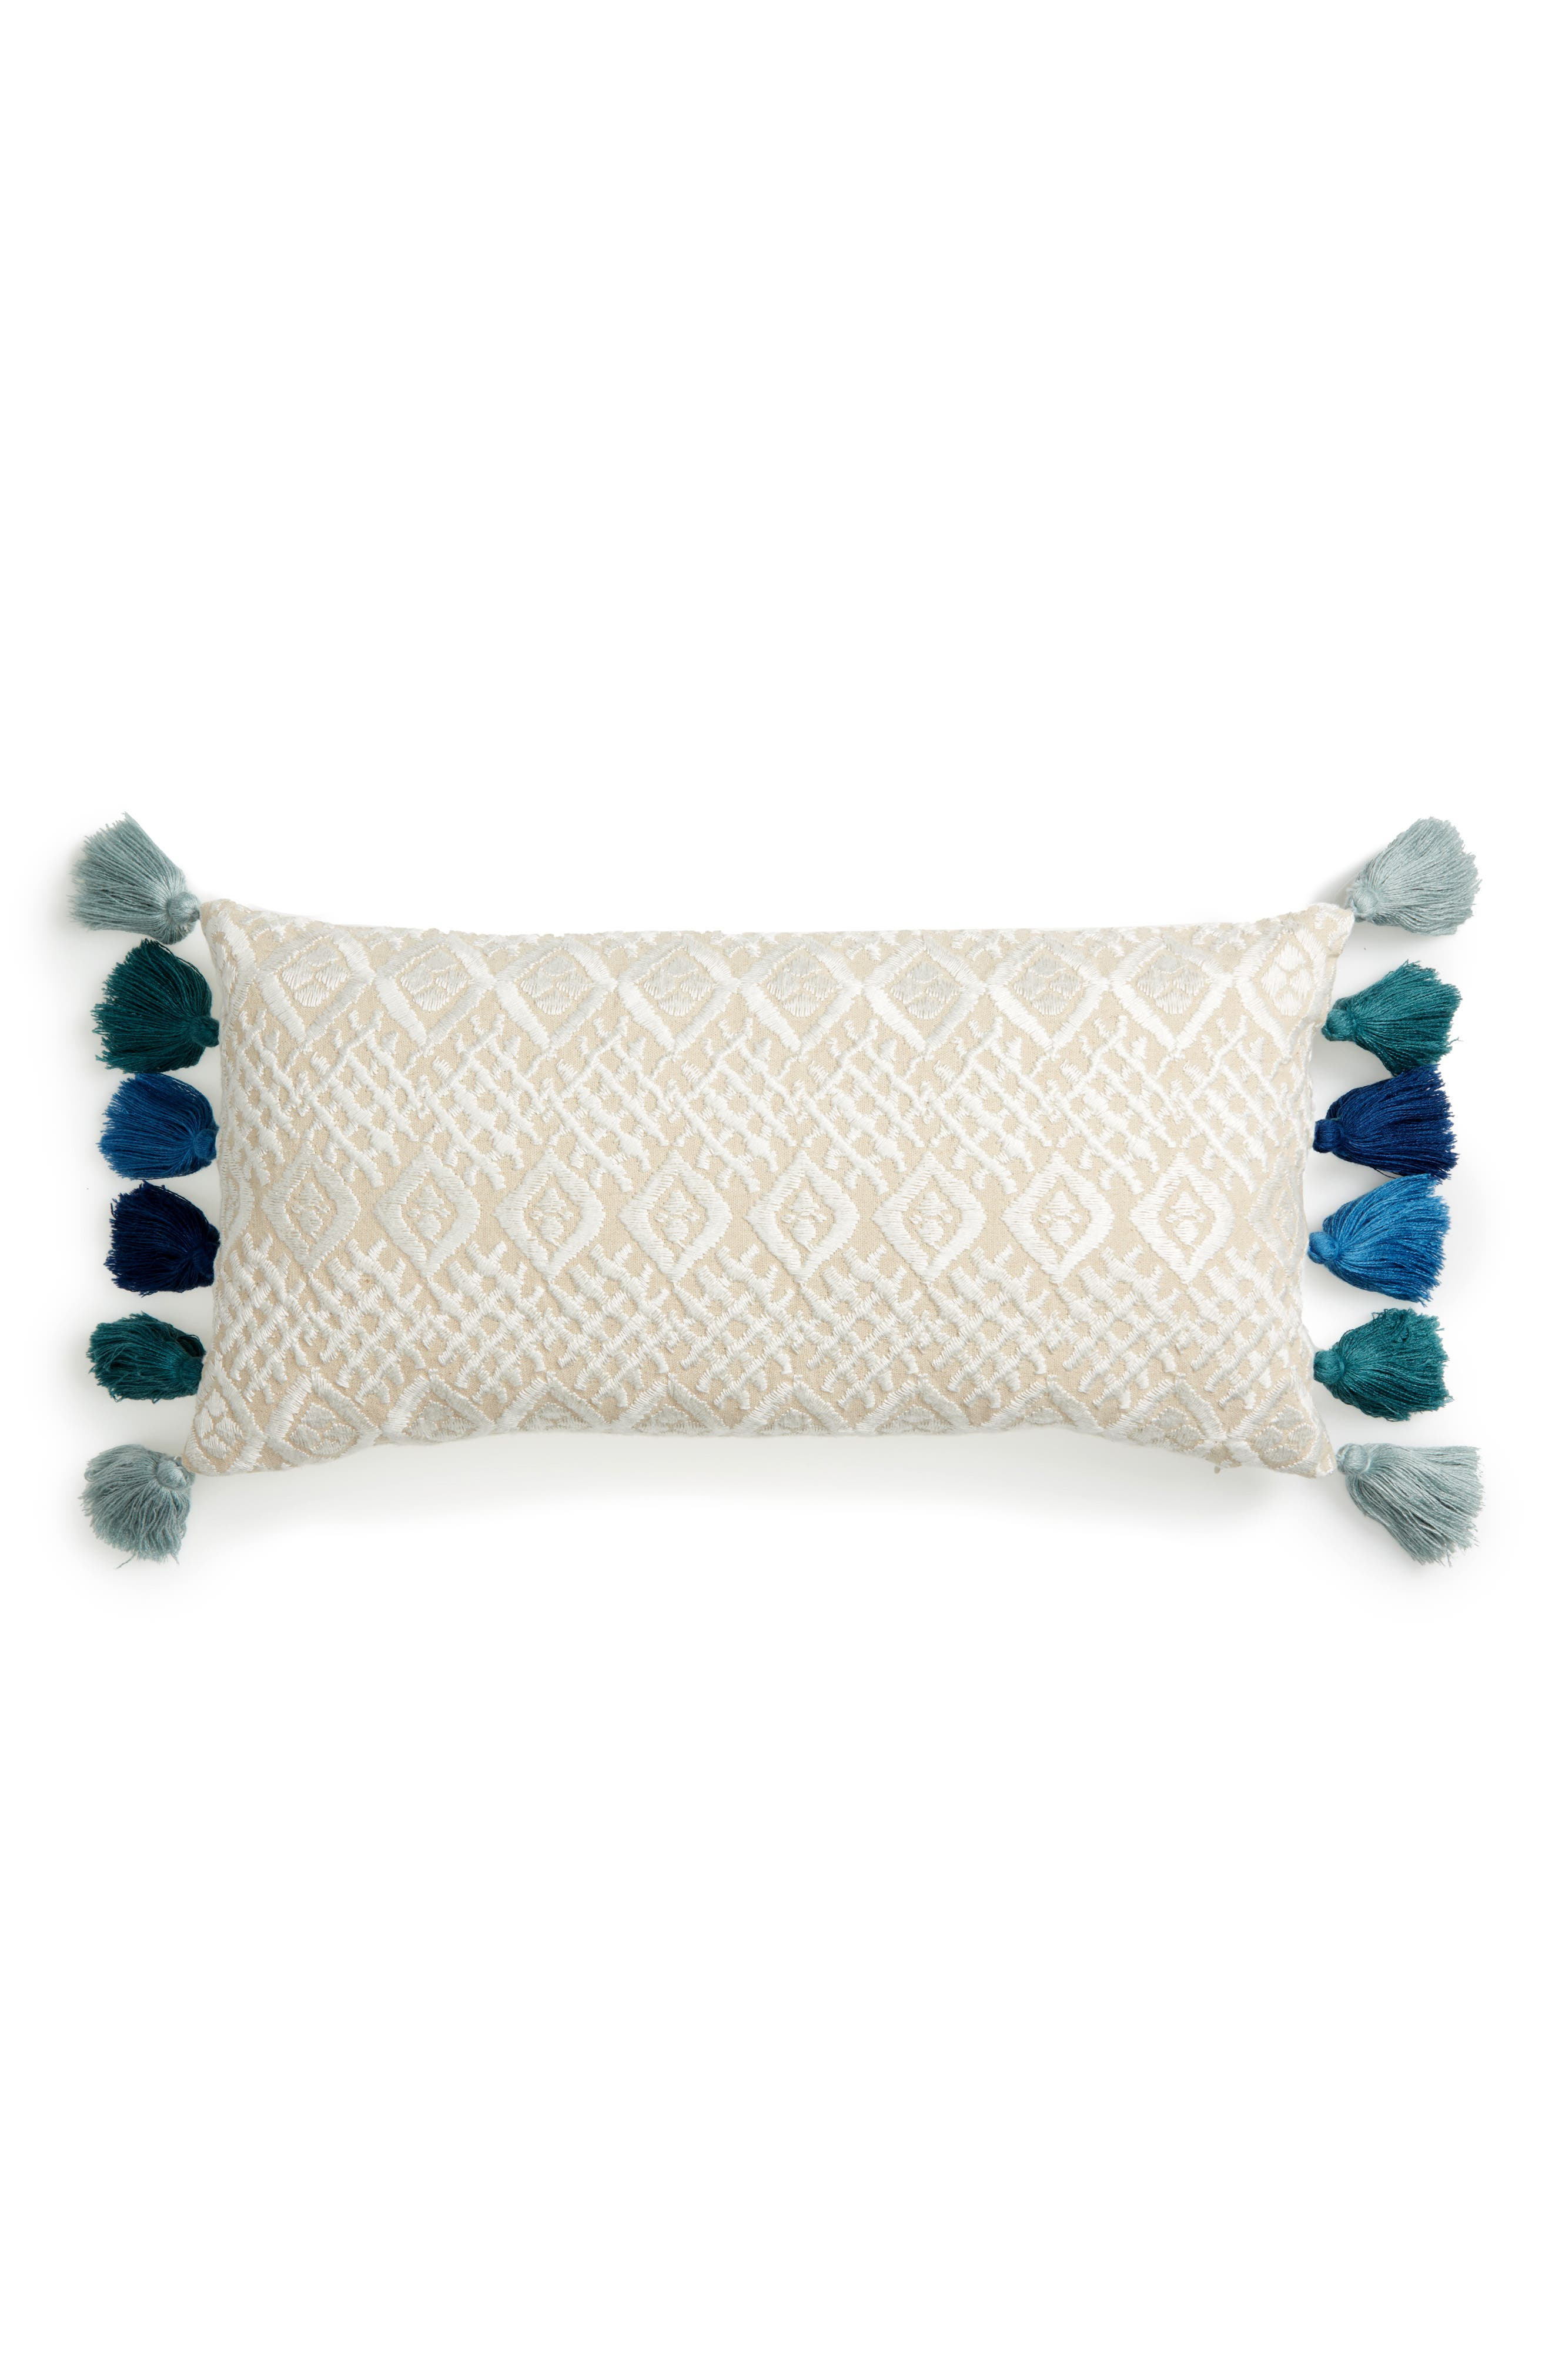 Beckett Embroidered Pillow,                             Main thumbnail 1, color,                             250